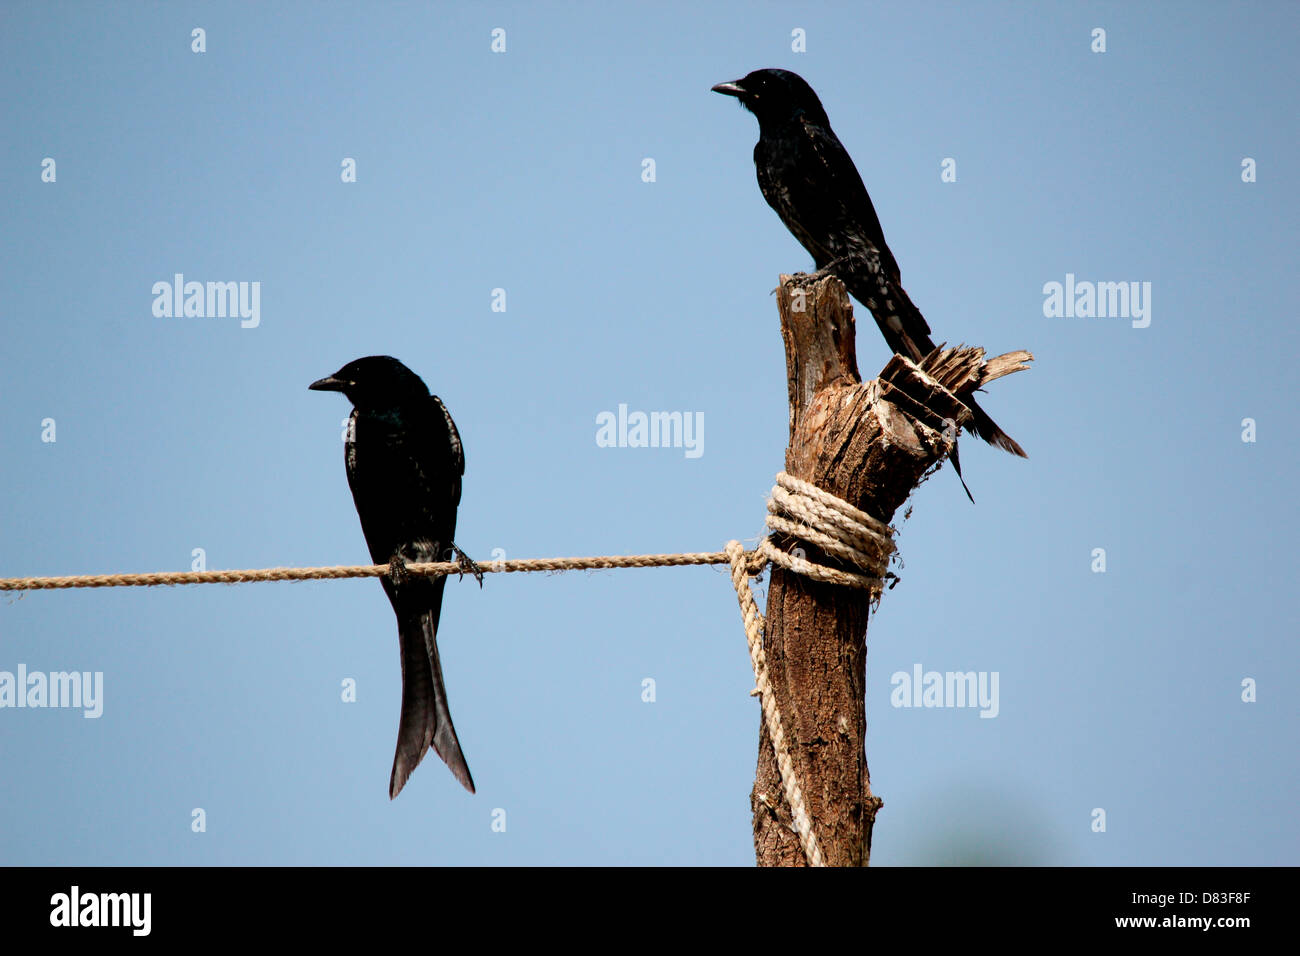 Two black birds(Black Drongo) looking in same direction- a creative photography to show agreement or same opinion. - Stock Image